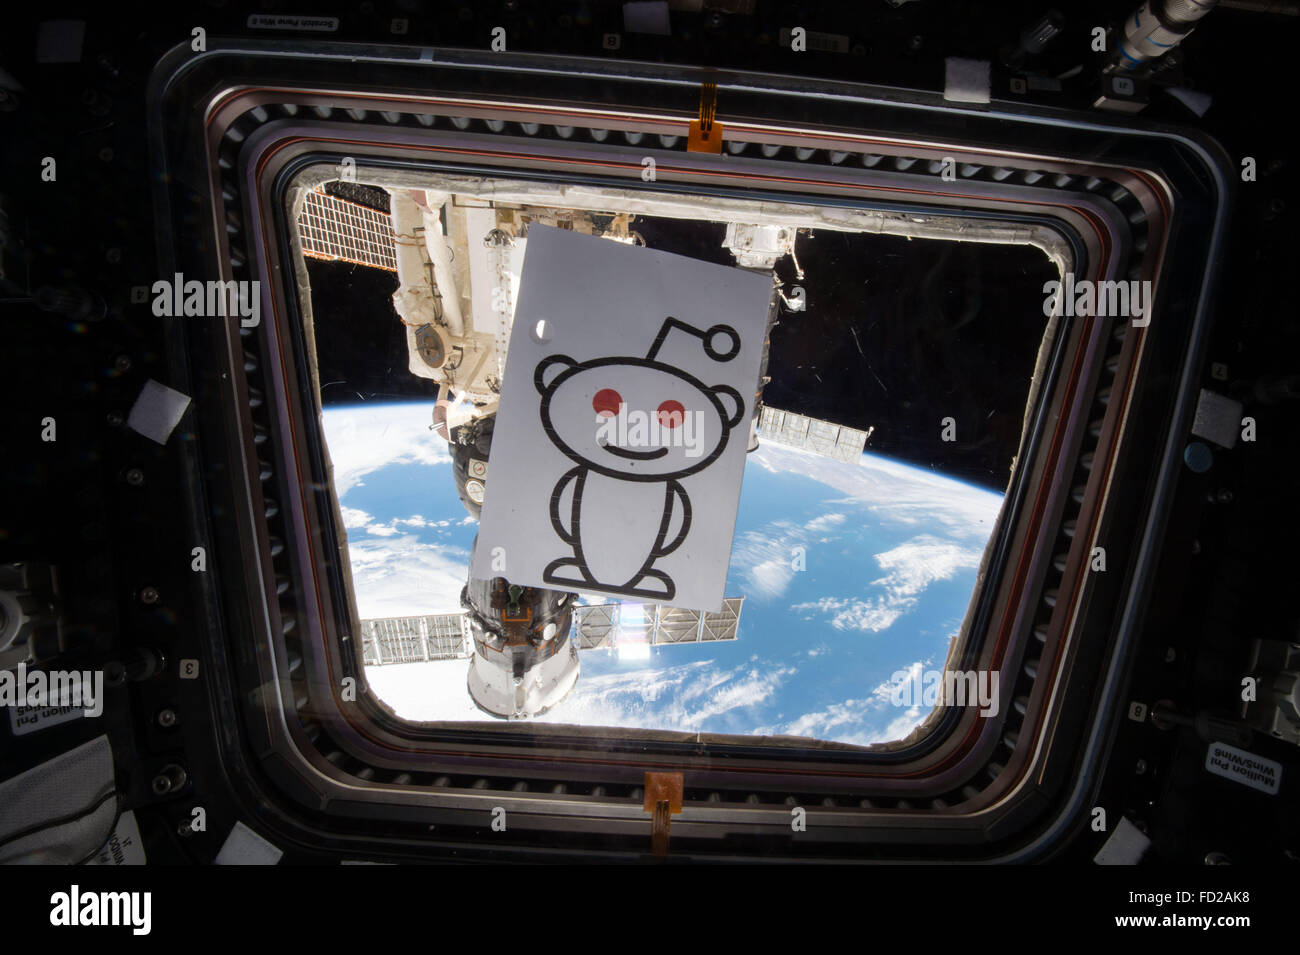 Cupola Iss Stock Photos & Cupola Iss Stock Images - Alamy